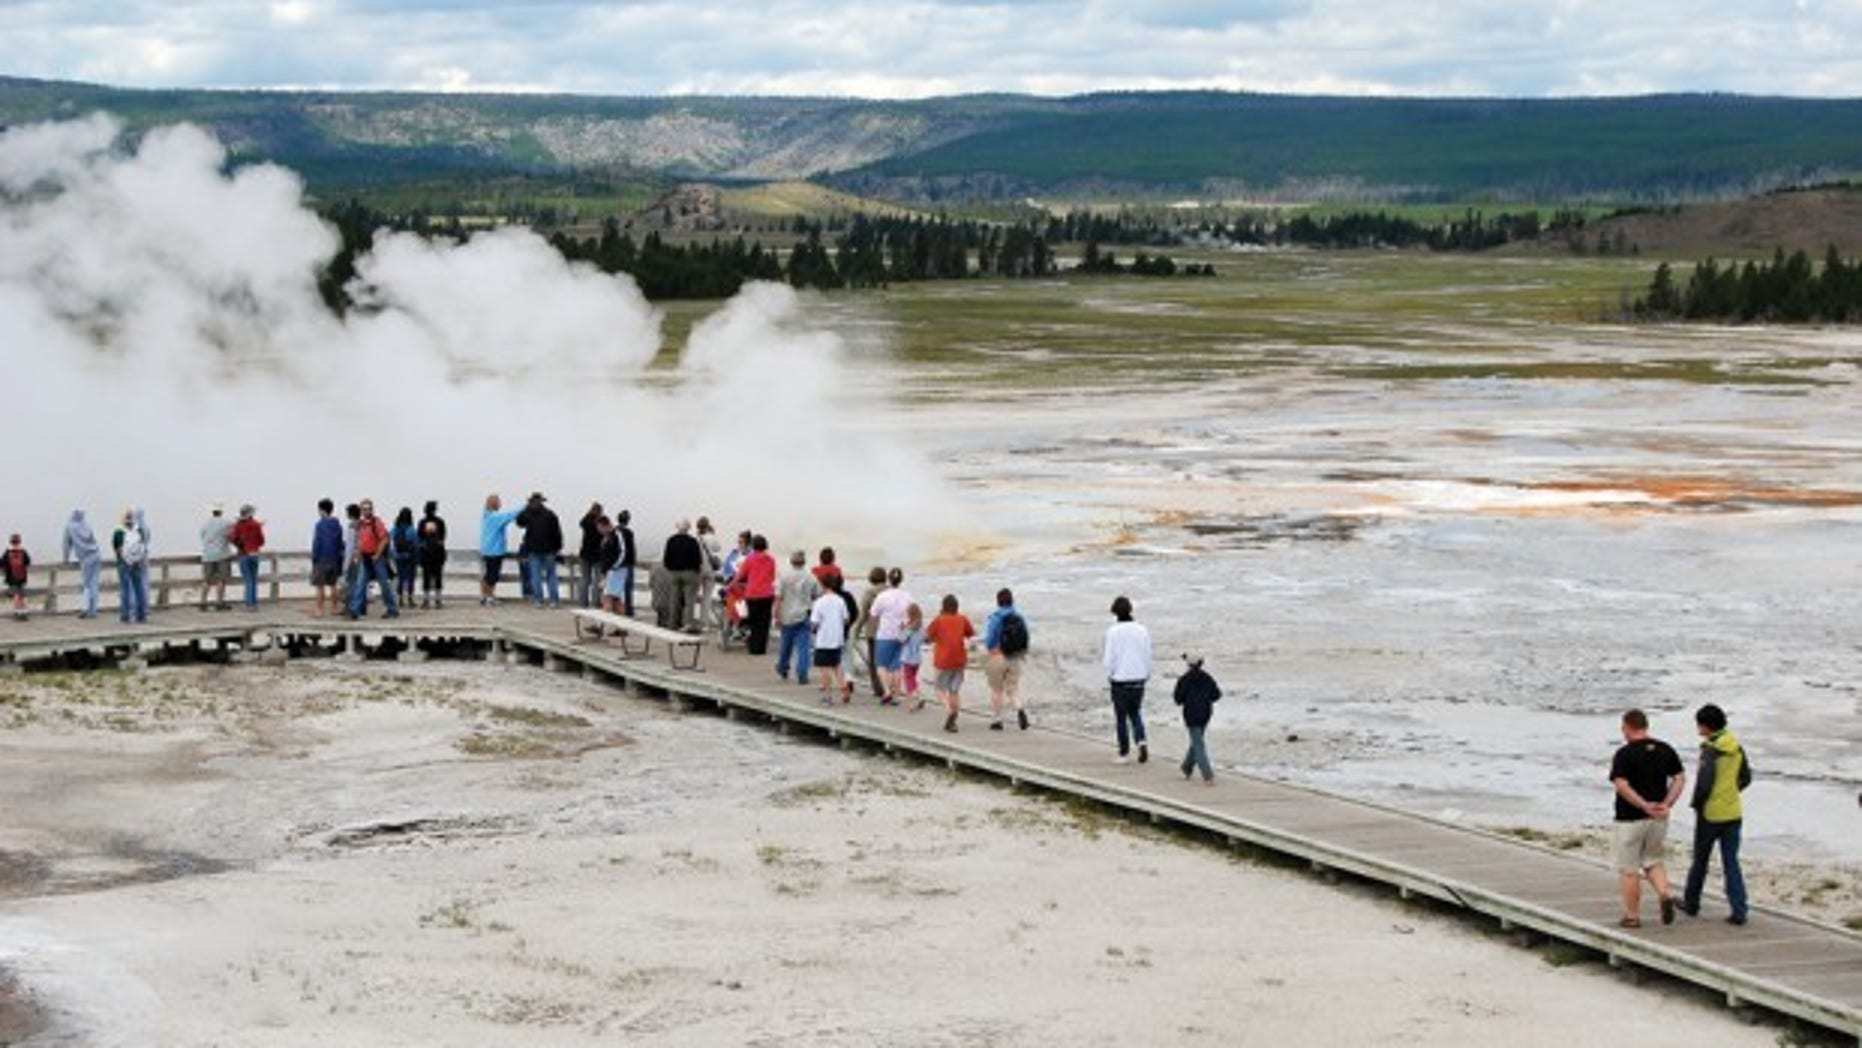 Boardwalks in Yellowstone are designed to protect tourists from slipping into natural geothermal features.